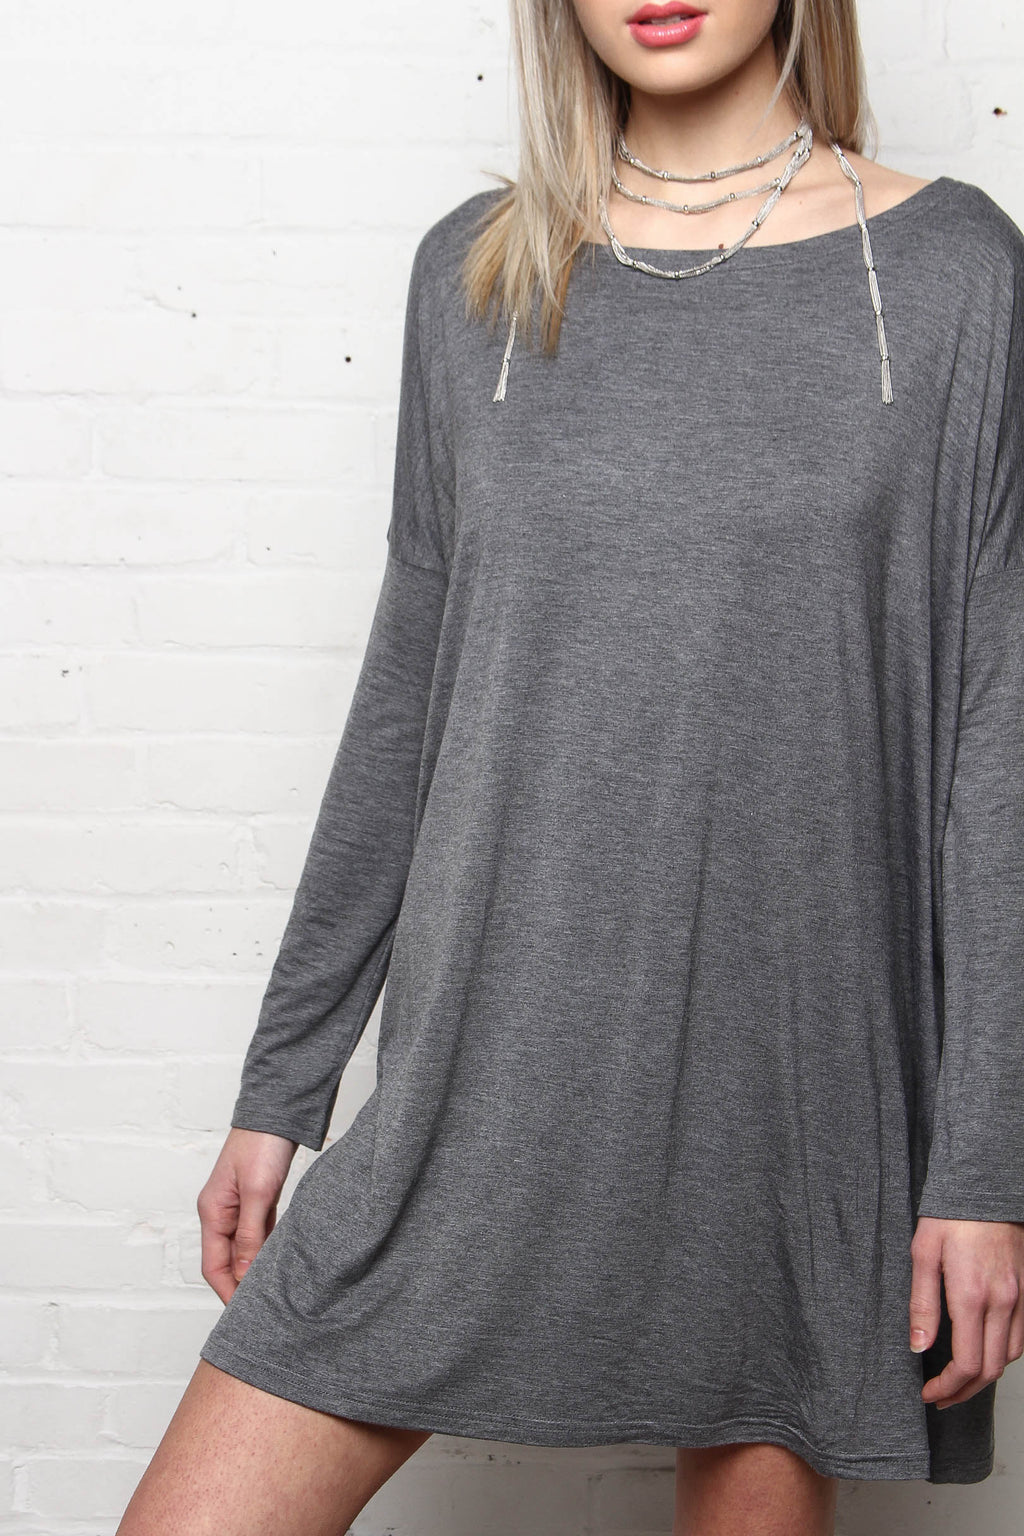 Easy Does It Everyday Tunic Dress - Dark Heather Gray